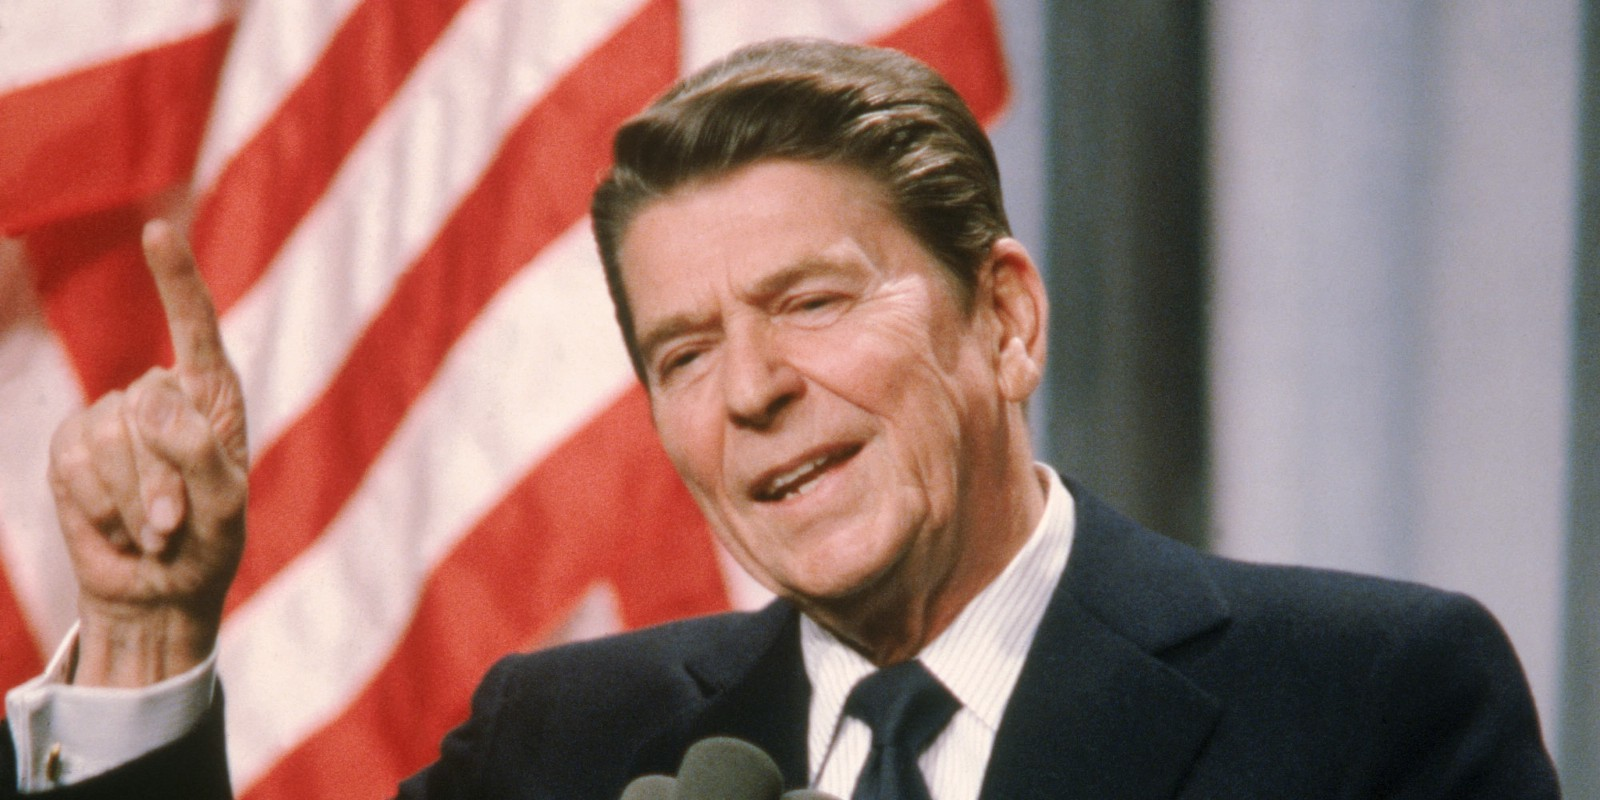 Ronald Reagan shined in his 50 s as the President of United States